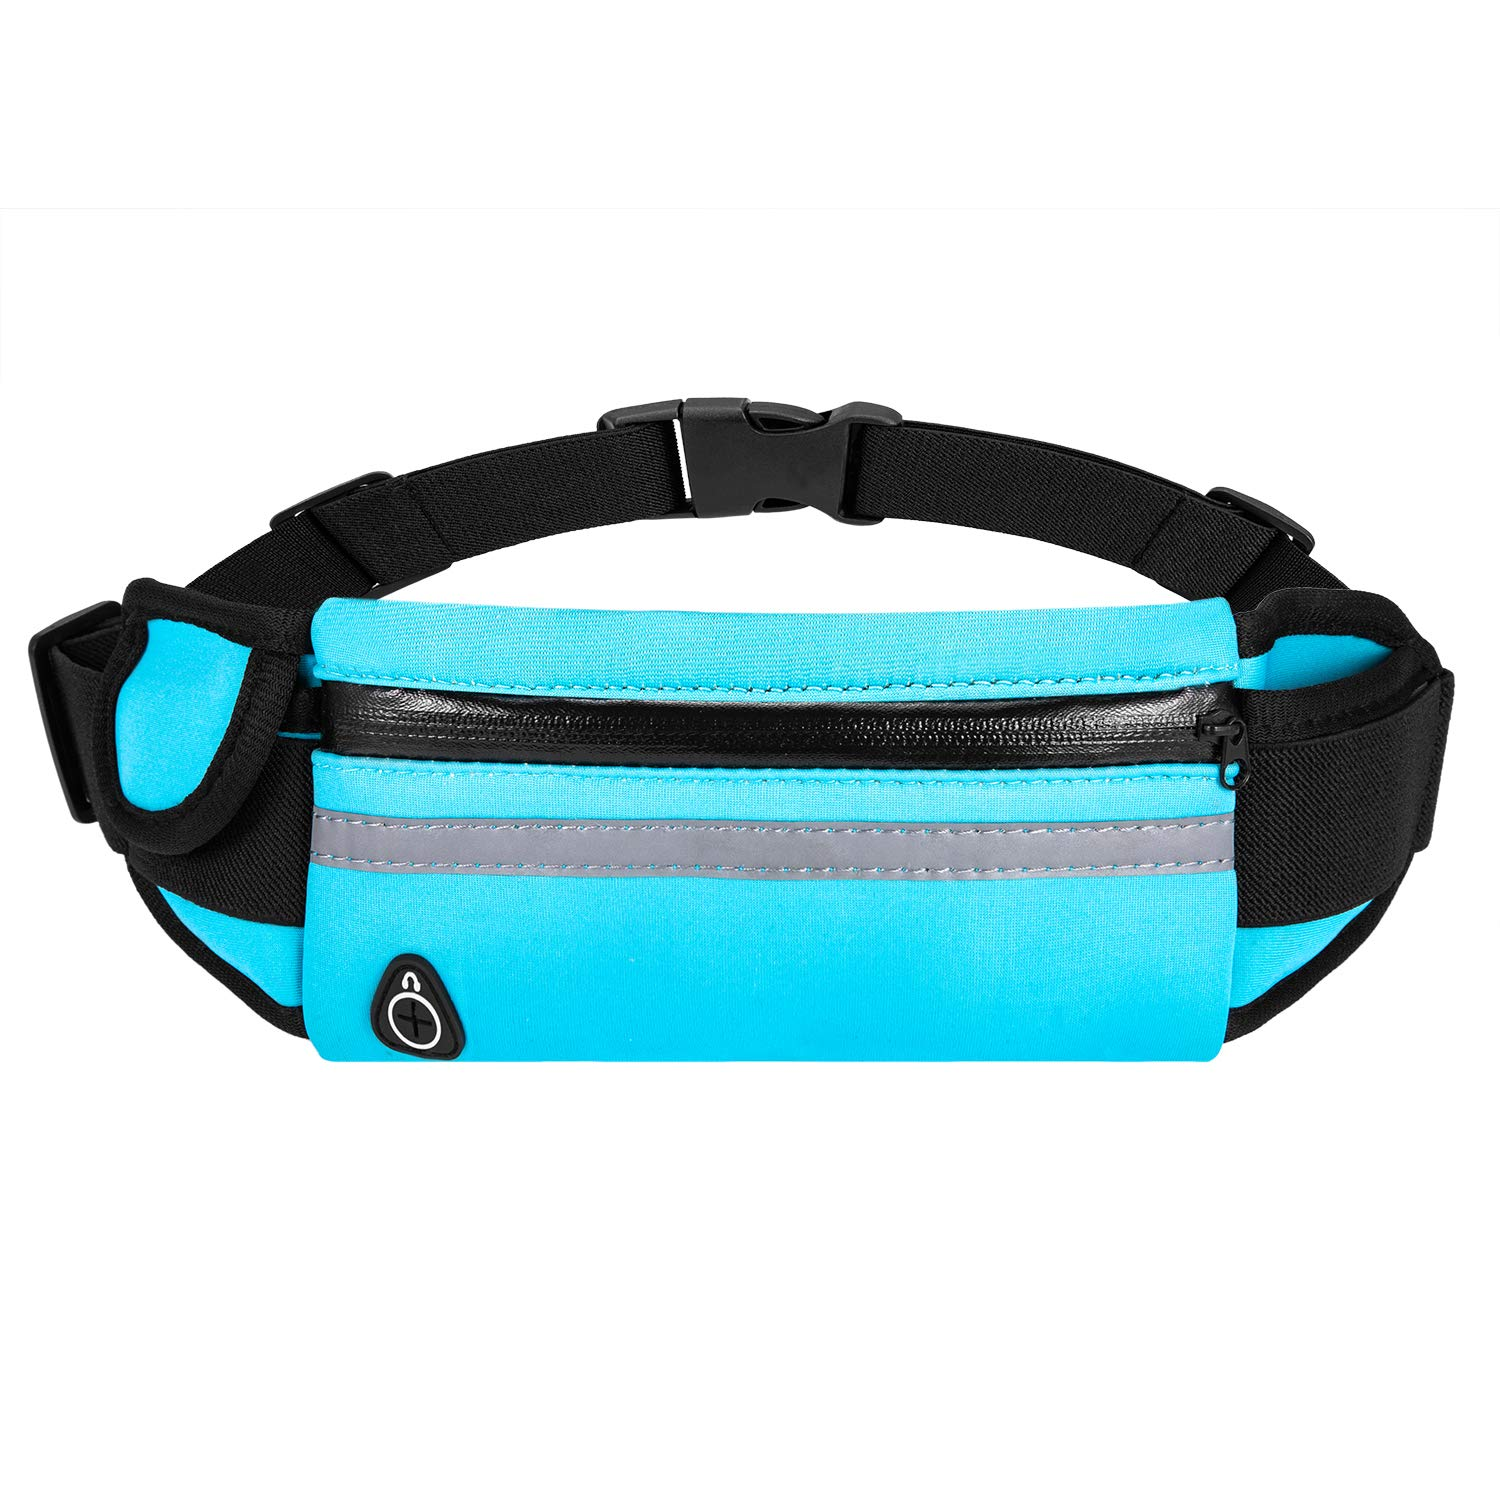 Bounce Free Pouch Bag, Fanny Pack Workout Belt Sports Waist Pack Belt Pouch for Apple iPhone XR XS 8 X 7 Samsung Note Galaxy in Running Walking Cycling Gym